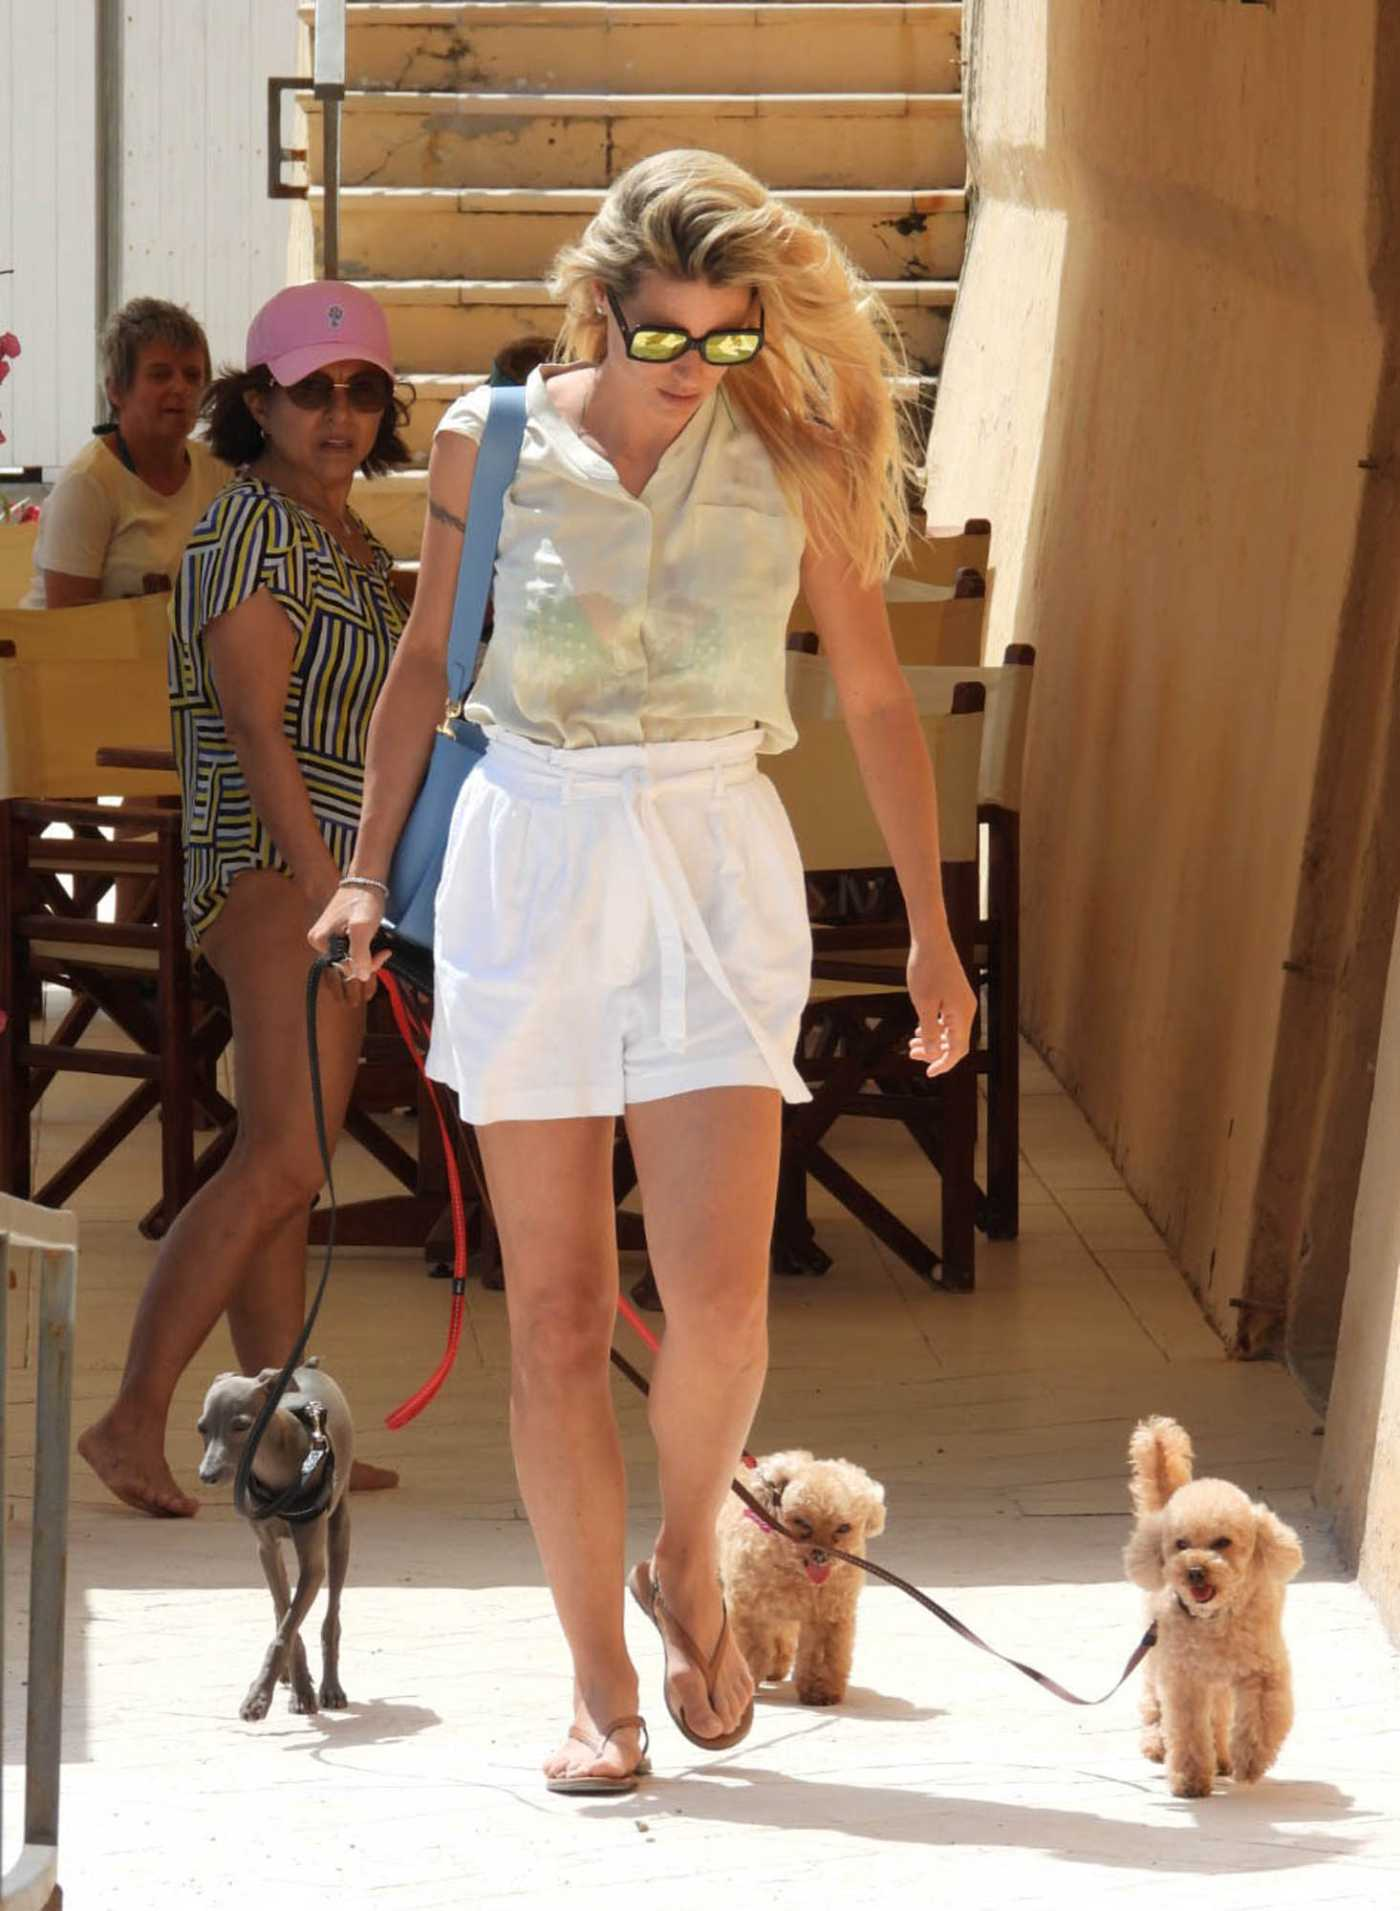 Michelle Hunziker in a White Shorts Enjoys a Day on the Beach in Varigotti 06/19/2020